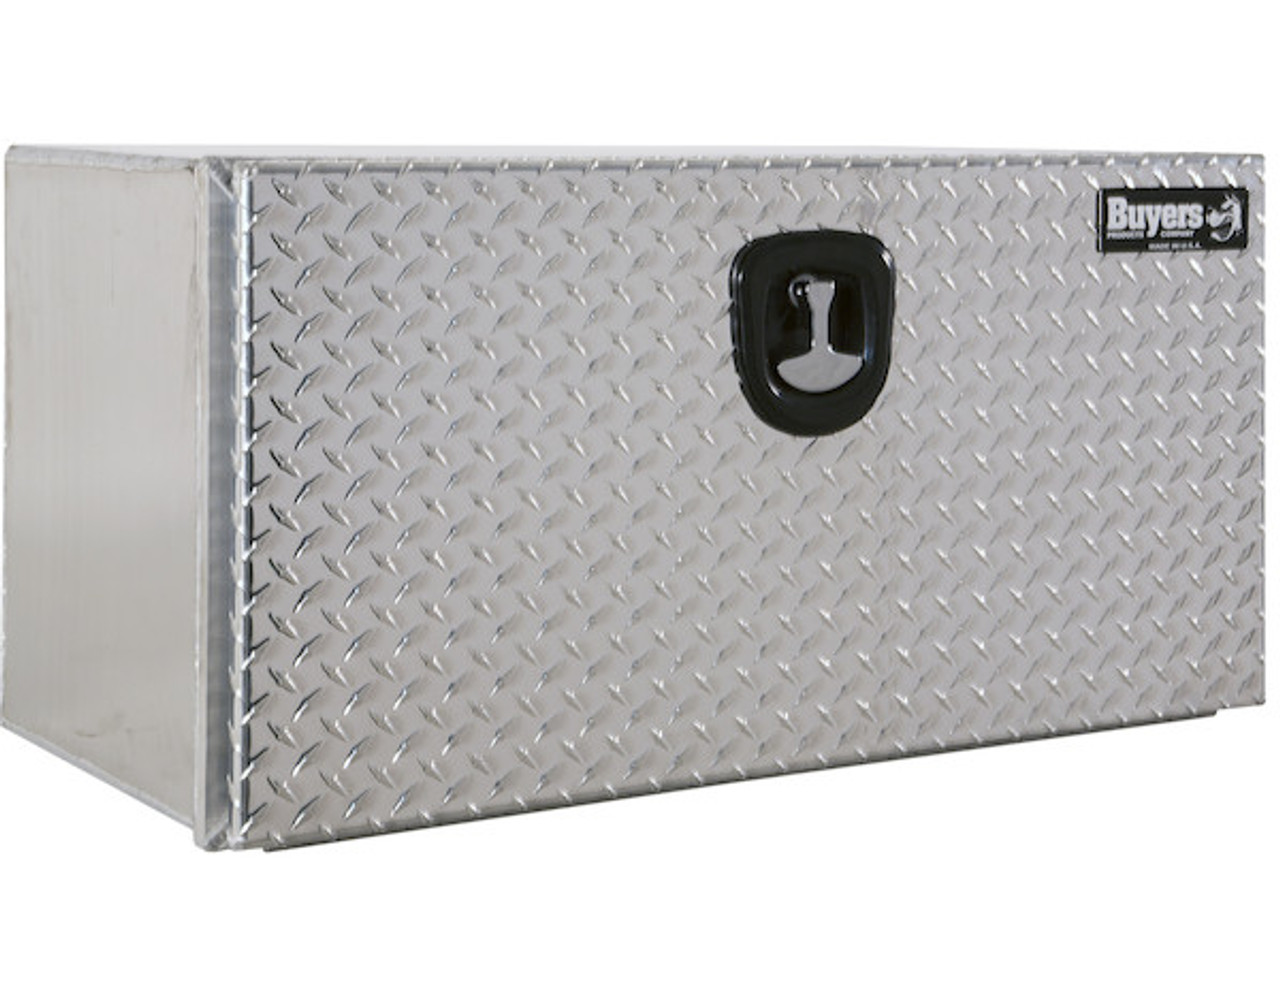 "1706505 BUYERS PRODUCTS XD SMOOTH ALUMINUM UNDERBODY TRUCK TOOLBOX WITH DIAMOND TREAD DOOR 18""HX18""DX36""W"